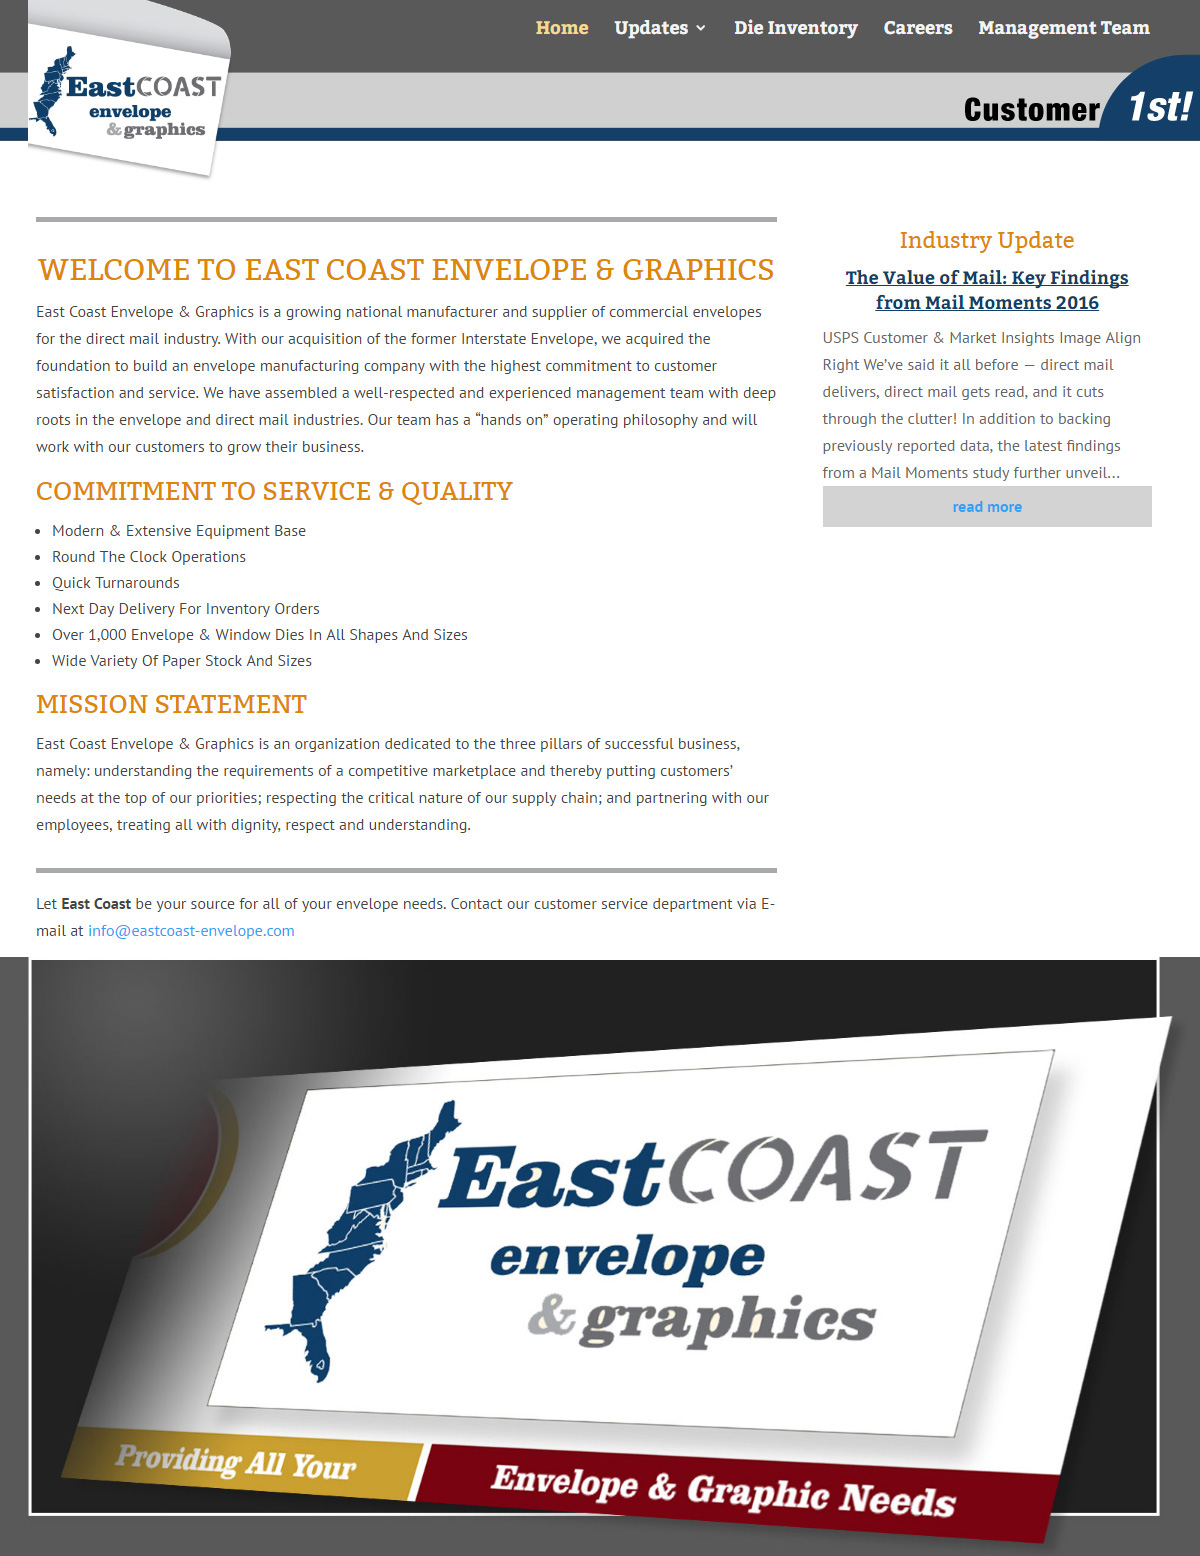 East Coast Envelope and Graphics